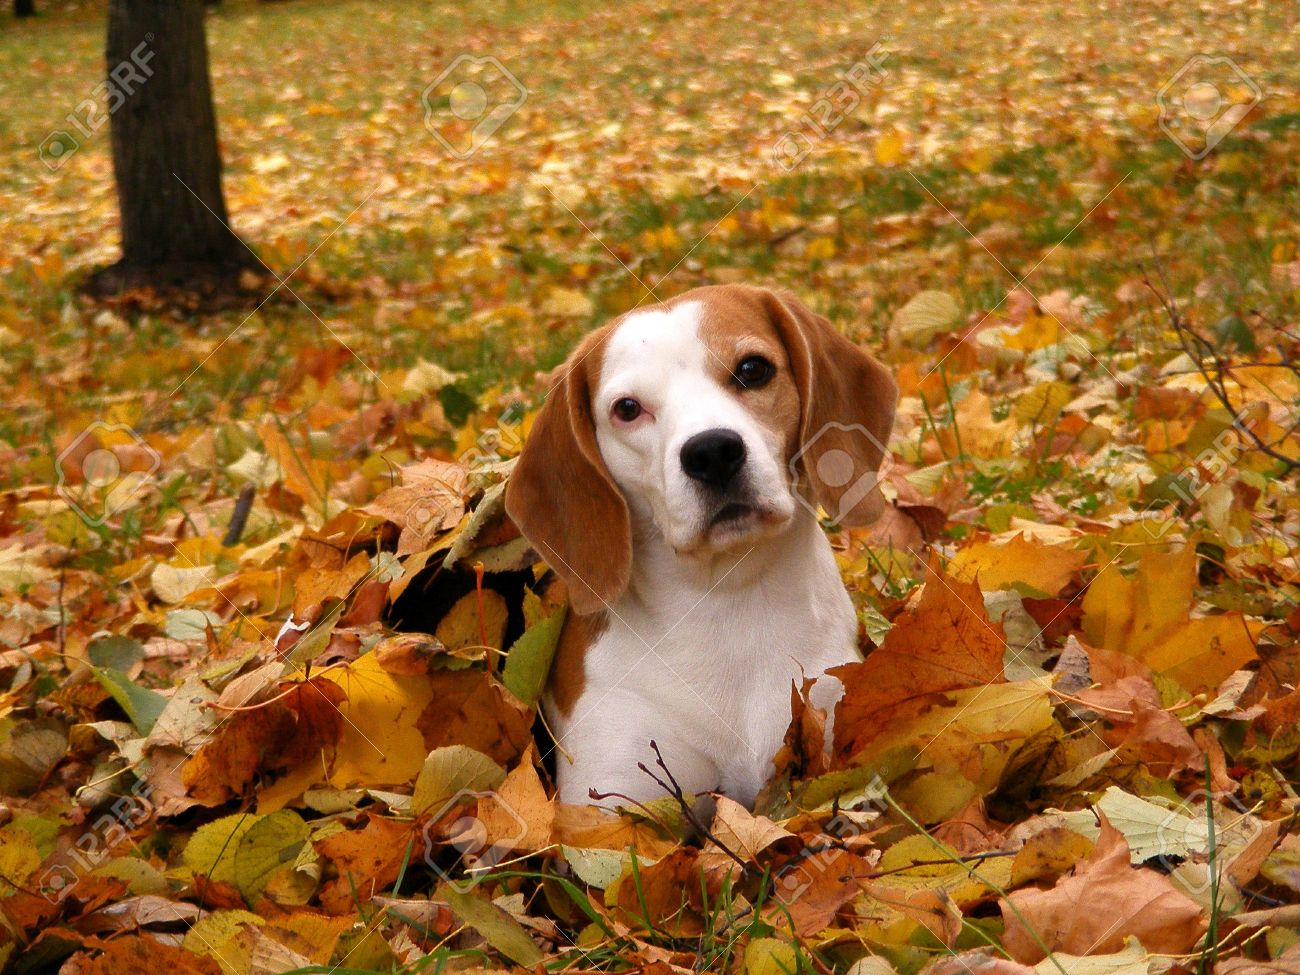 http://previews.123rf.com/images/virgonira/virgonira1207/virgonira120700278/14456920-Tricolour-beagle-lying-on-the-ground-in-autumn-Stock-Photo-dog-autumn-fall.jpg